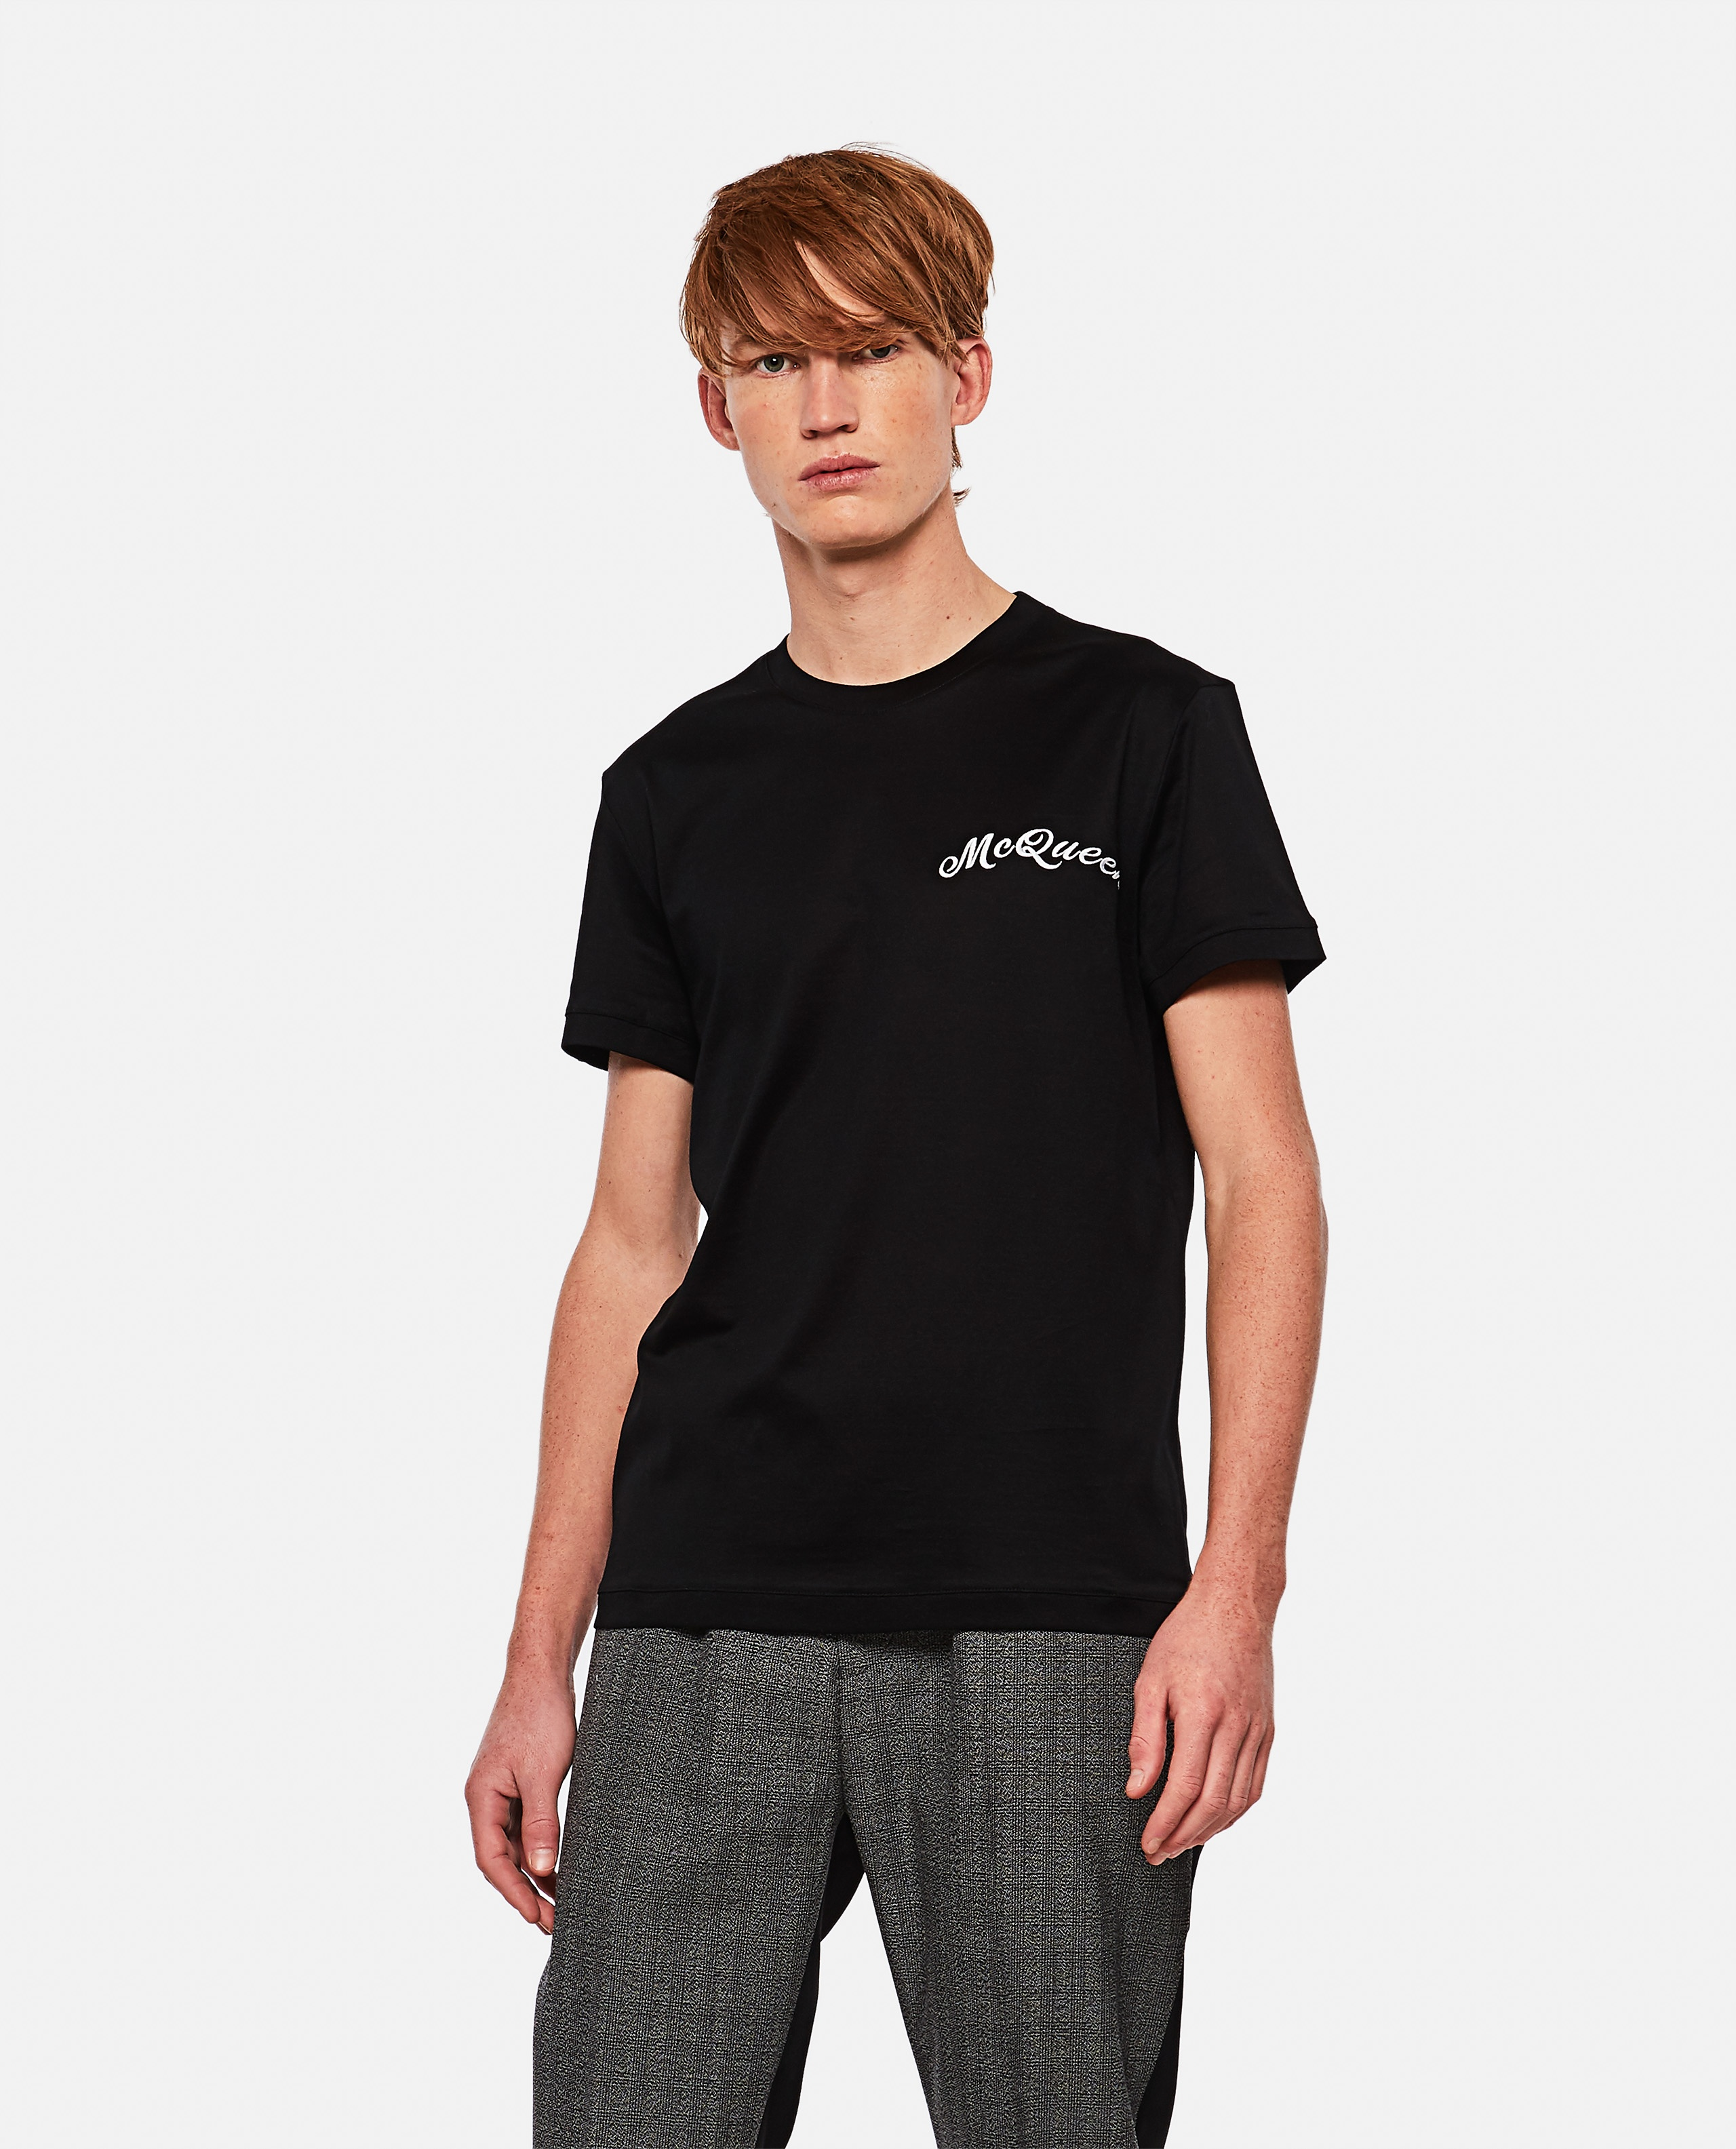 T-shirt with embroidered logo Men Alexander McQueen 000291060042850 1